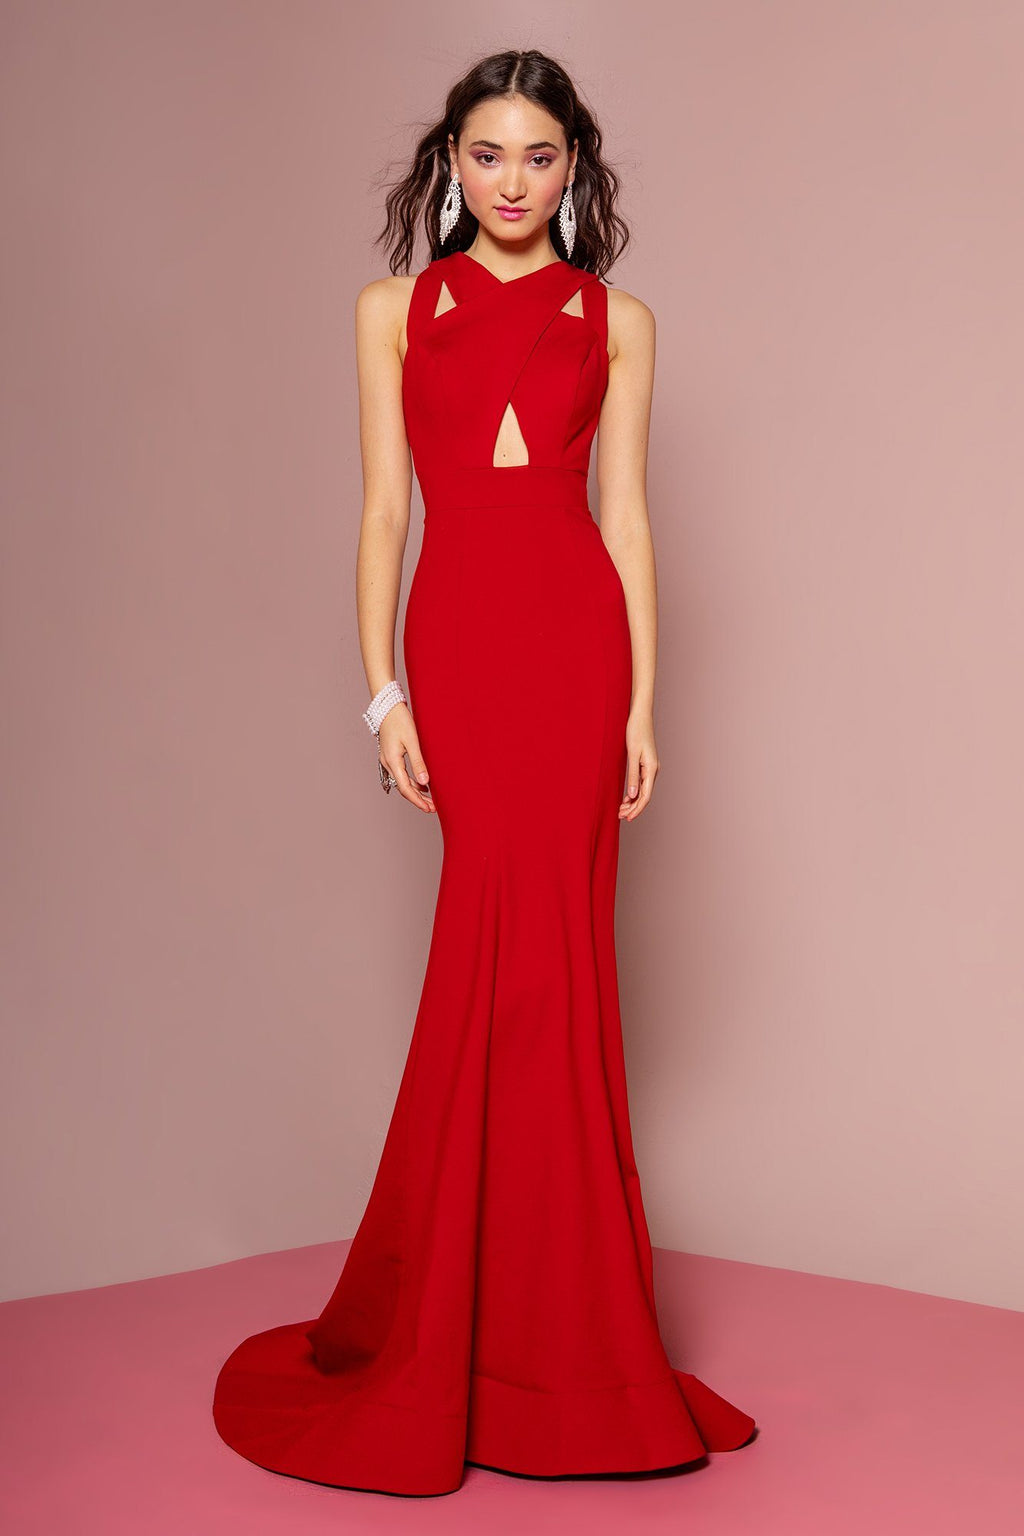 Sexy red evening gown gls 2706-Simply Fab Dress